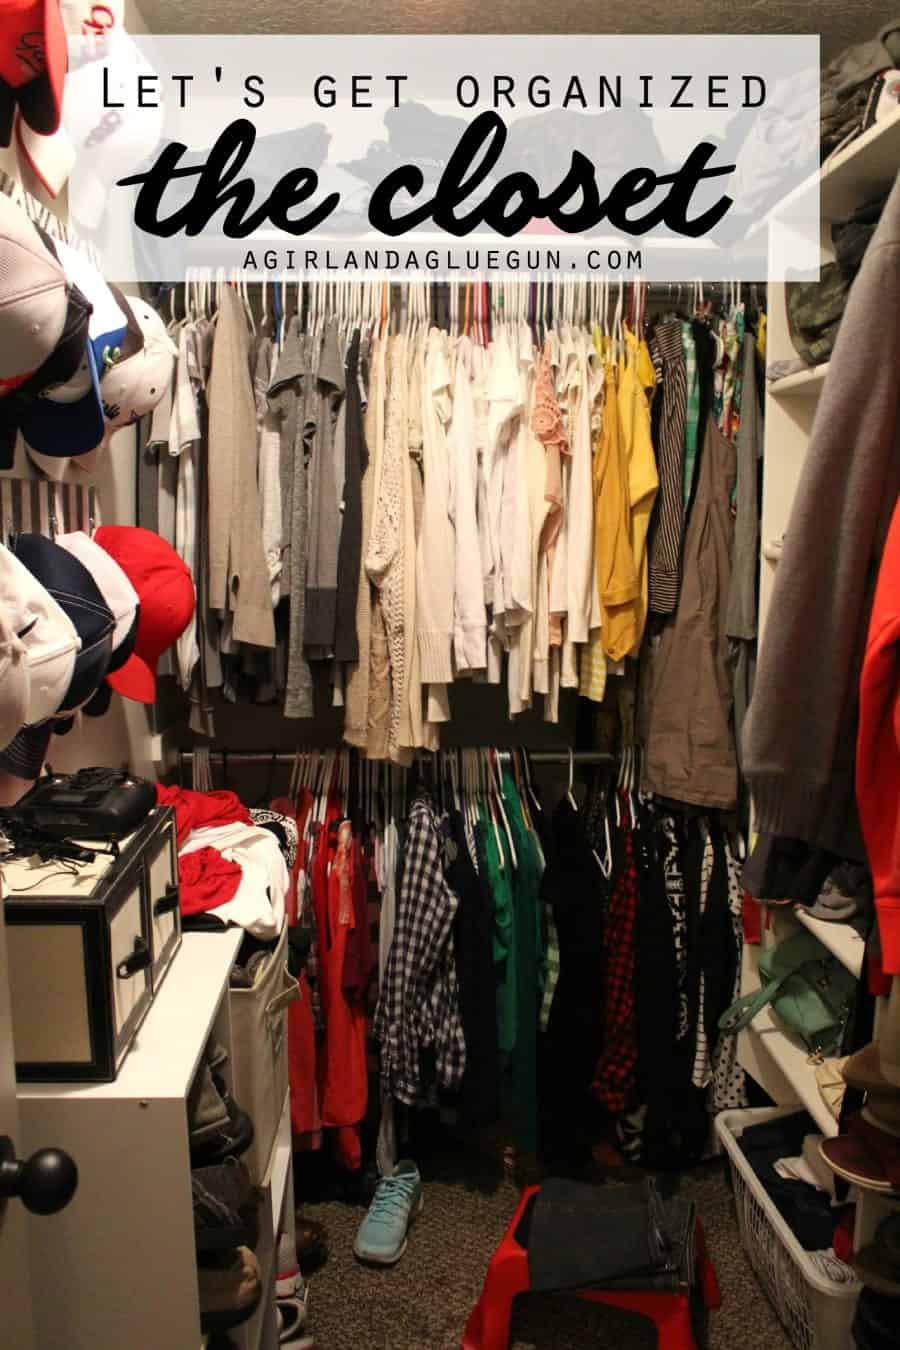 let's get organized the closet